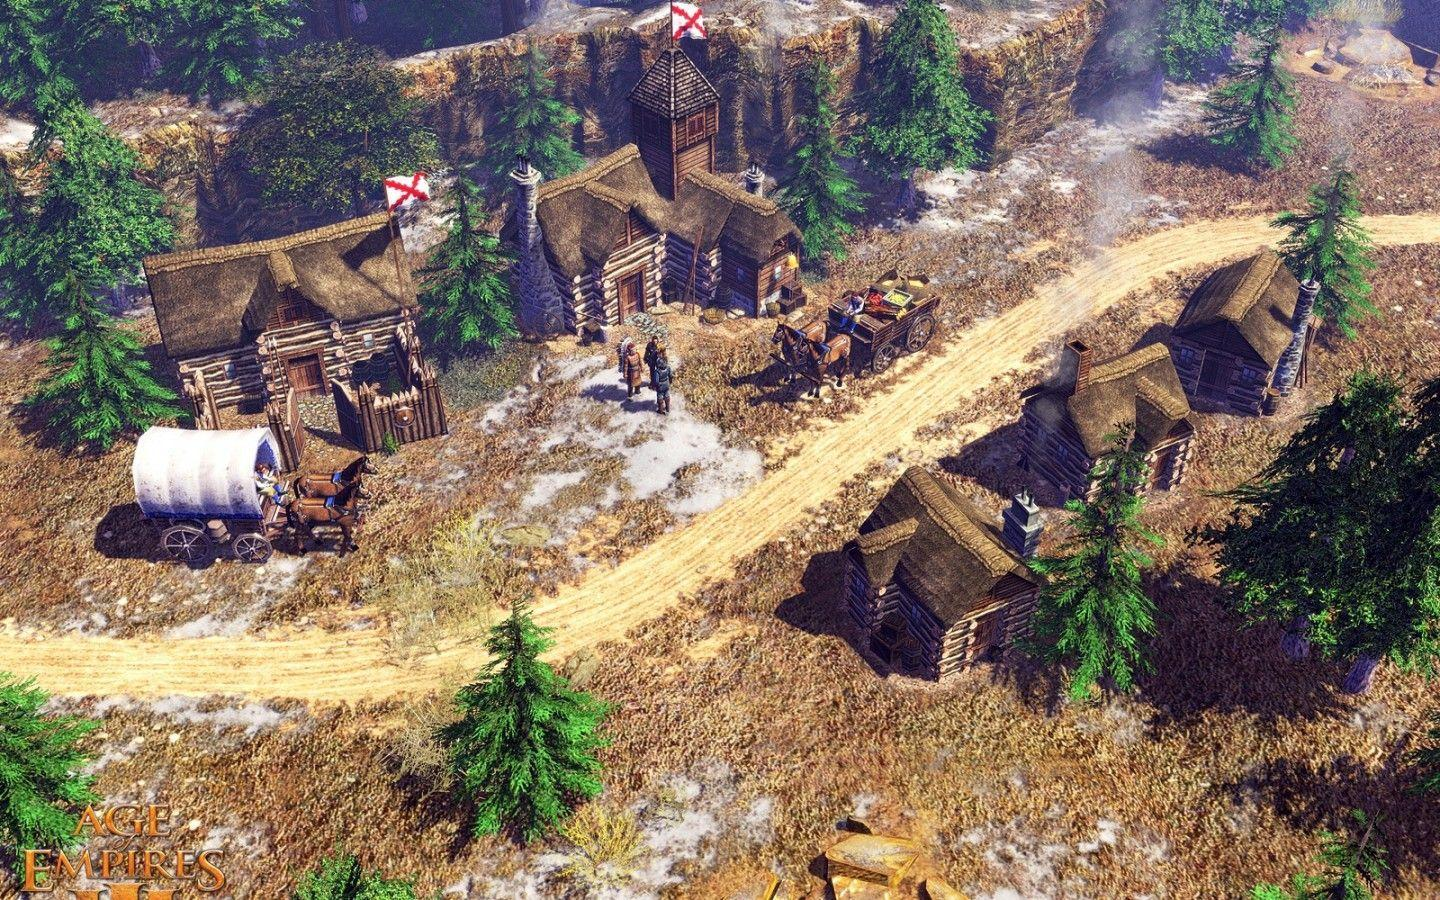 Age of Empires III, computer games 1440x900, widescreen wallpapers ...